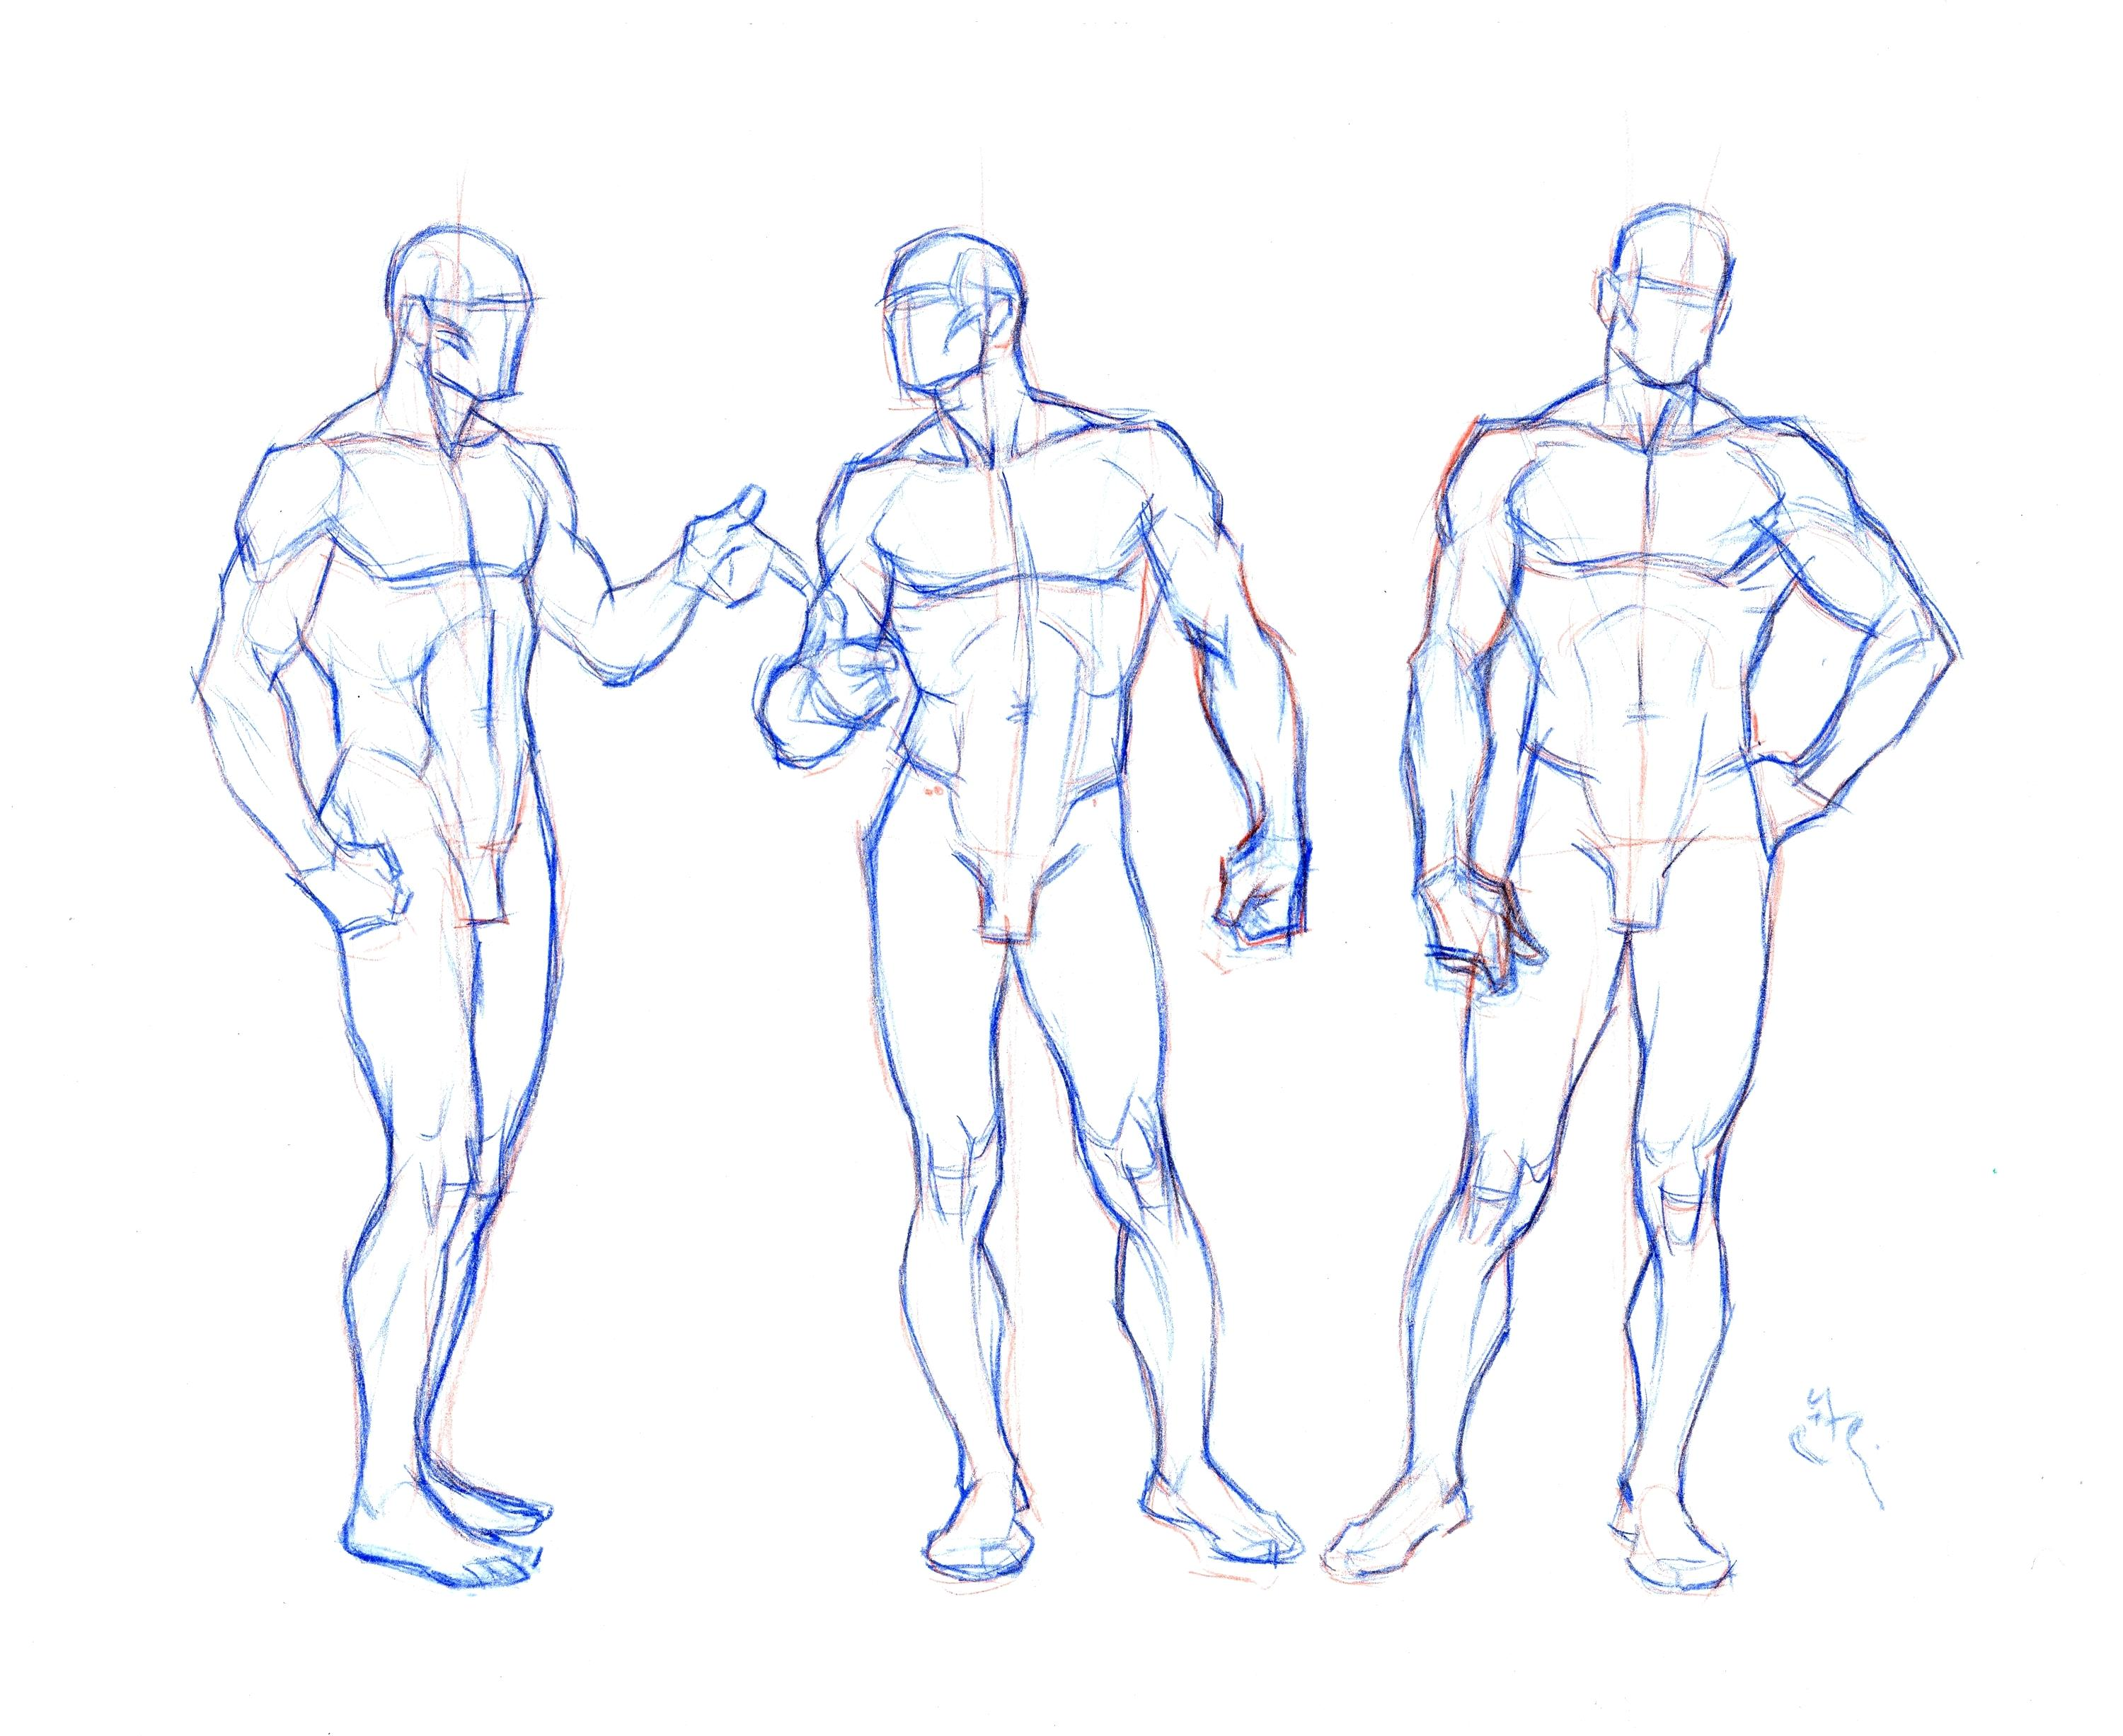 Body Drawing Template at GetDrawings.com | Free for personal use ...